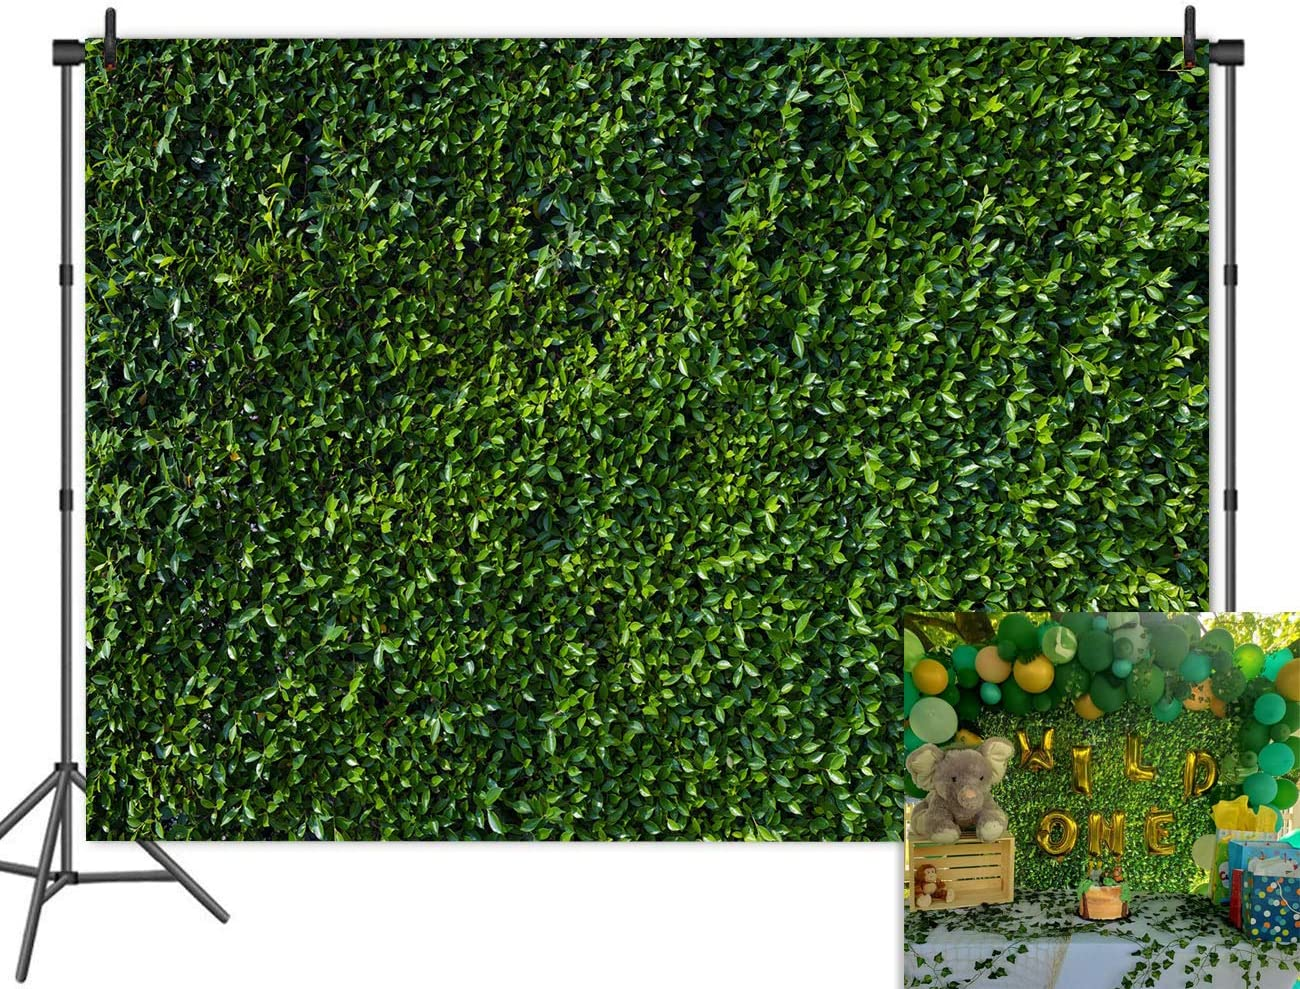 Nature Leaves Backdrops Green Grass Photo Backgrounds Vinyl Party Photography 7x5ft